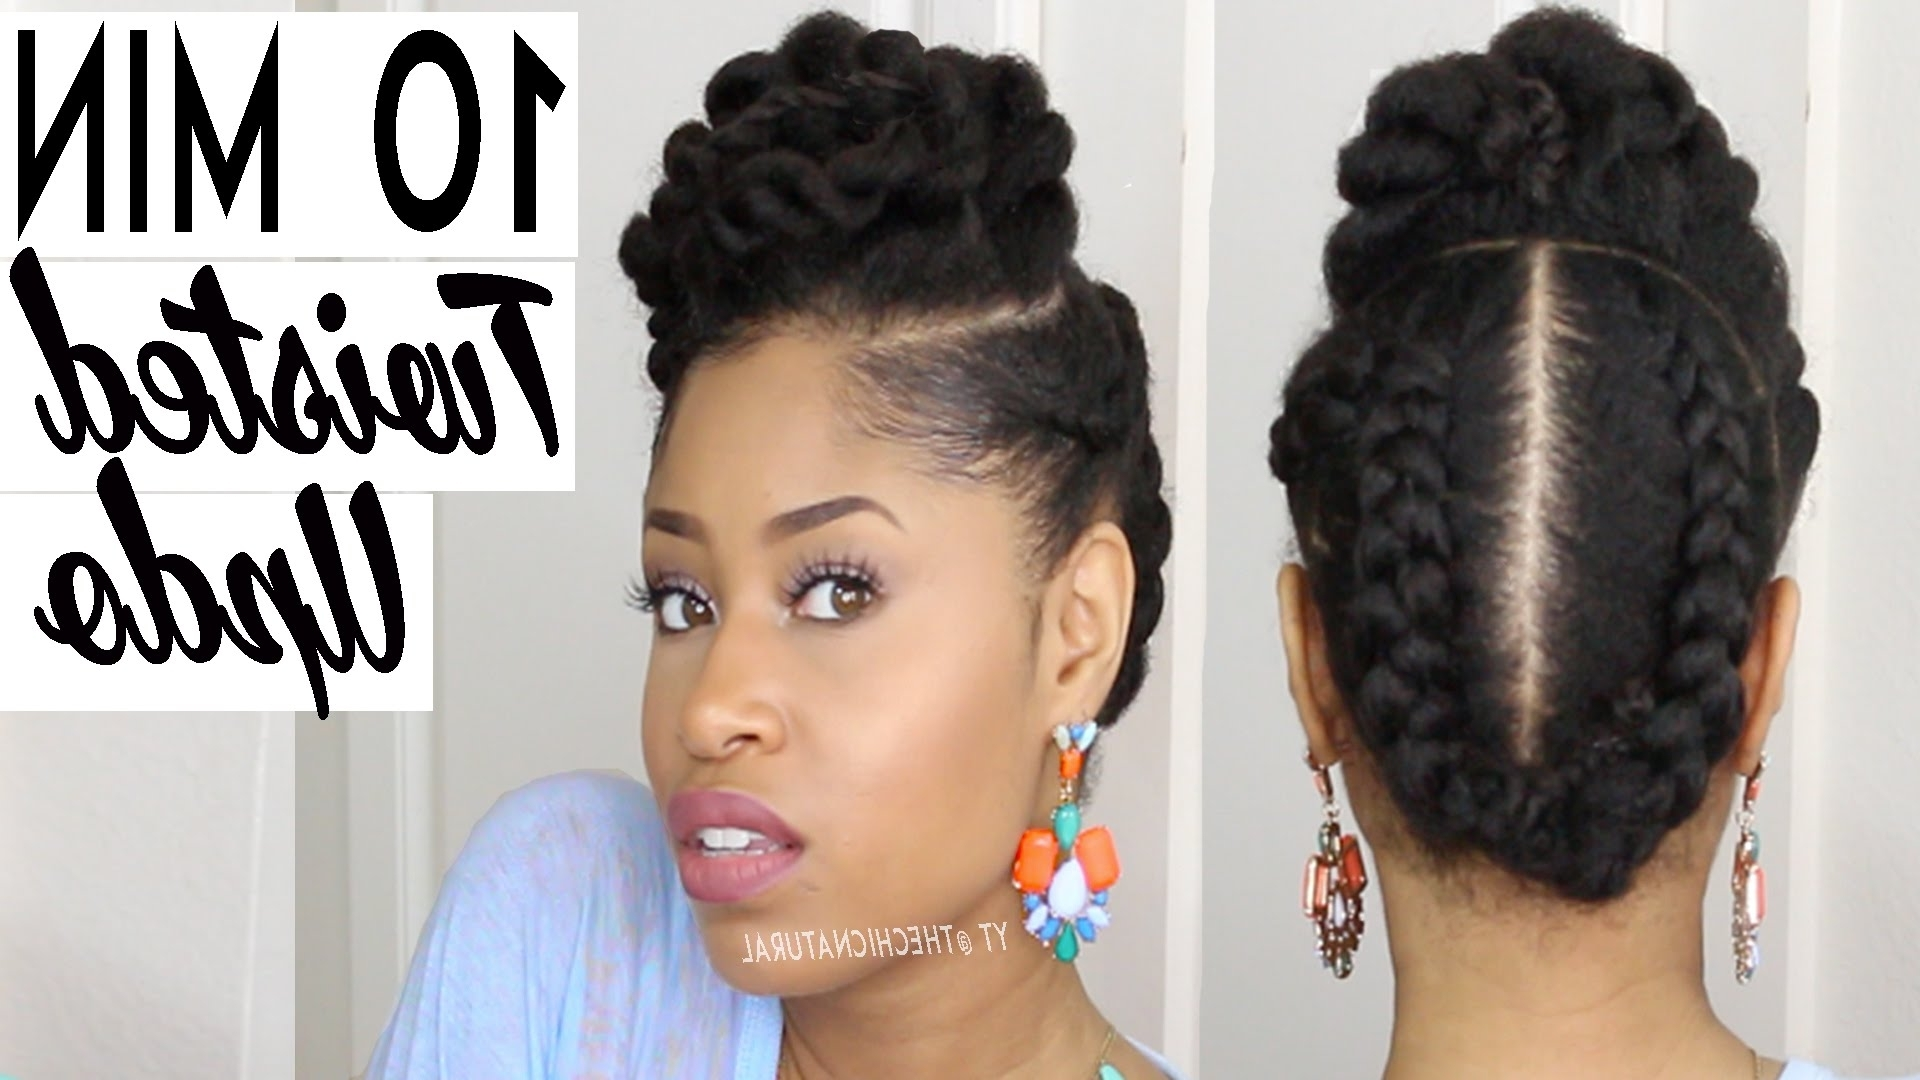 The 10 Minute Twisted Updo | Natural Hairstyle – Youtube With Regard To Quick Hair Updo Hairstyles (View 15 of 15)